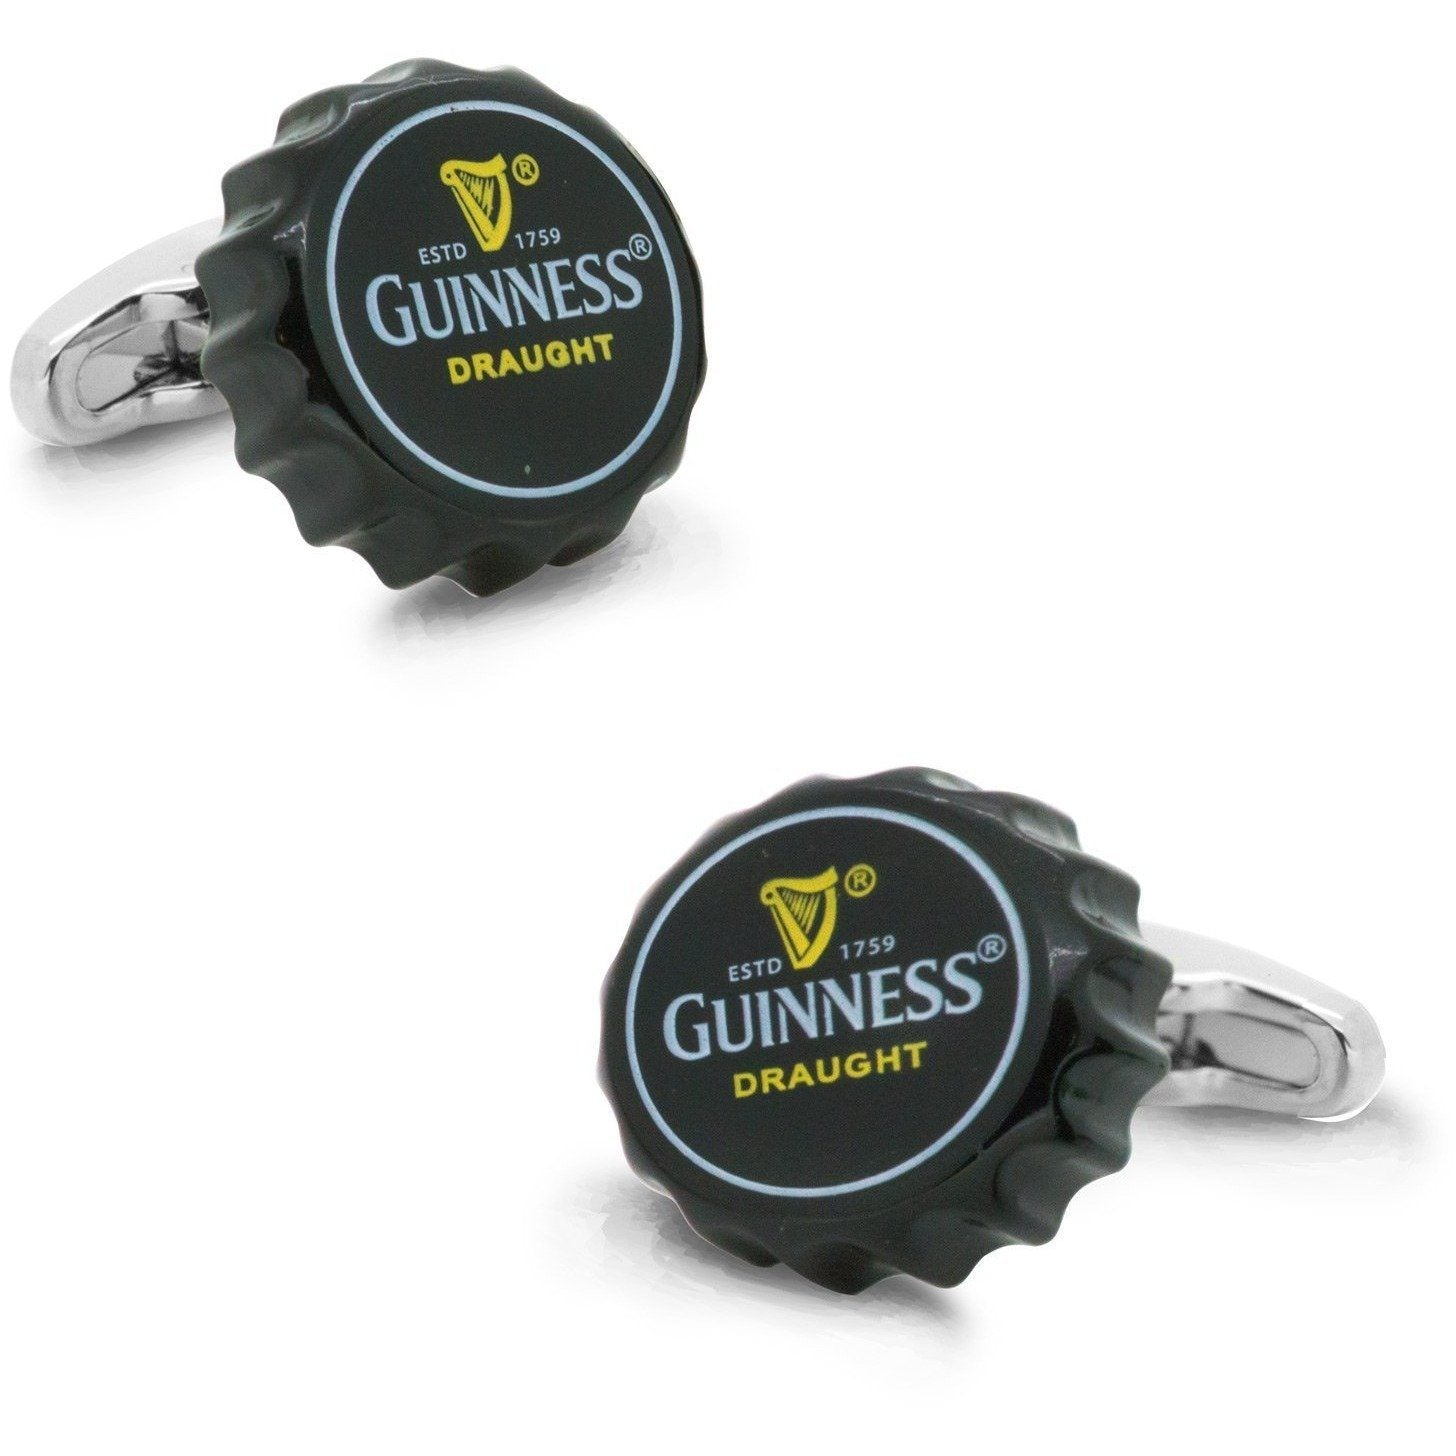 Black Guinness Beer Cap Cufflinks, Novelty Cufflinks, Cuffed.com.au, CL6011, $29.00